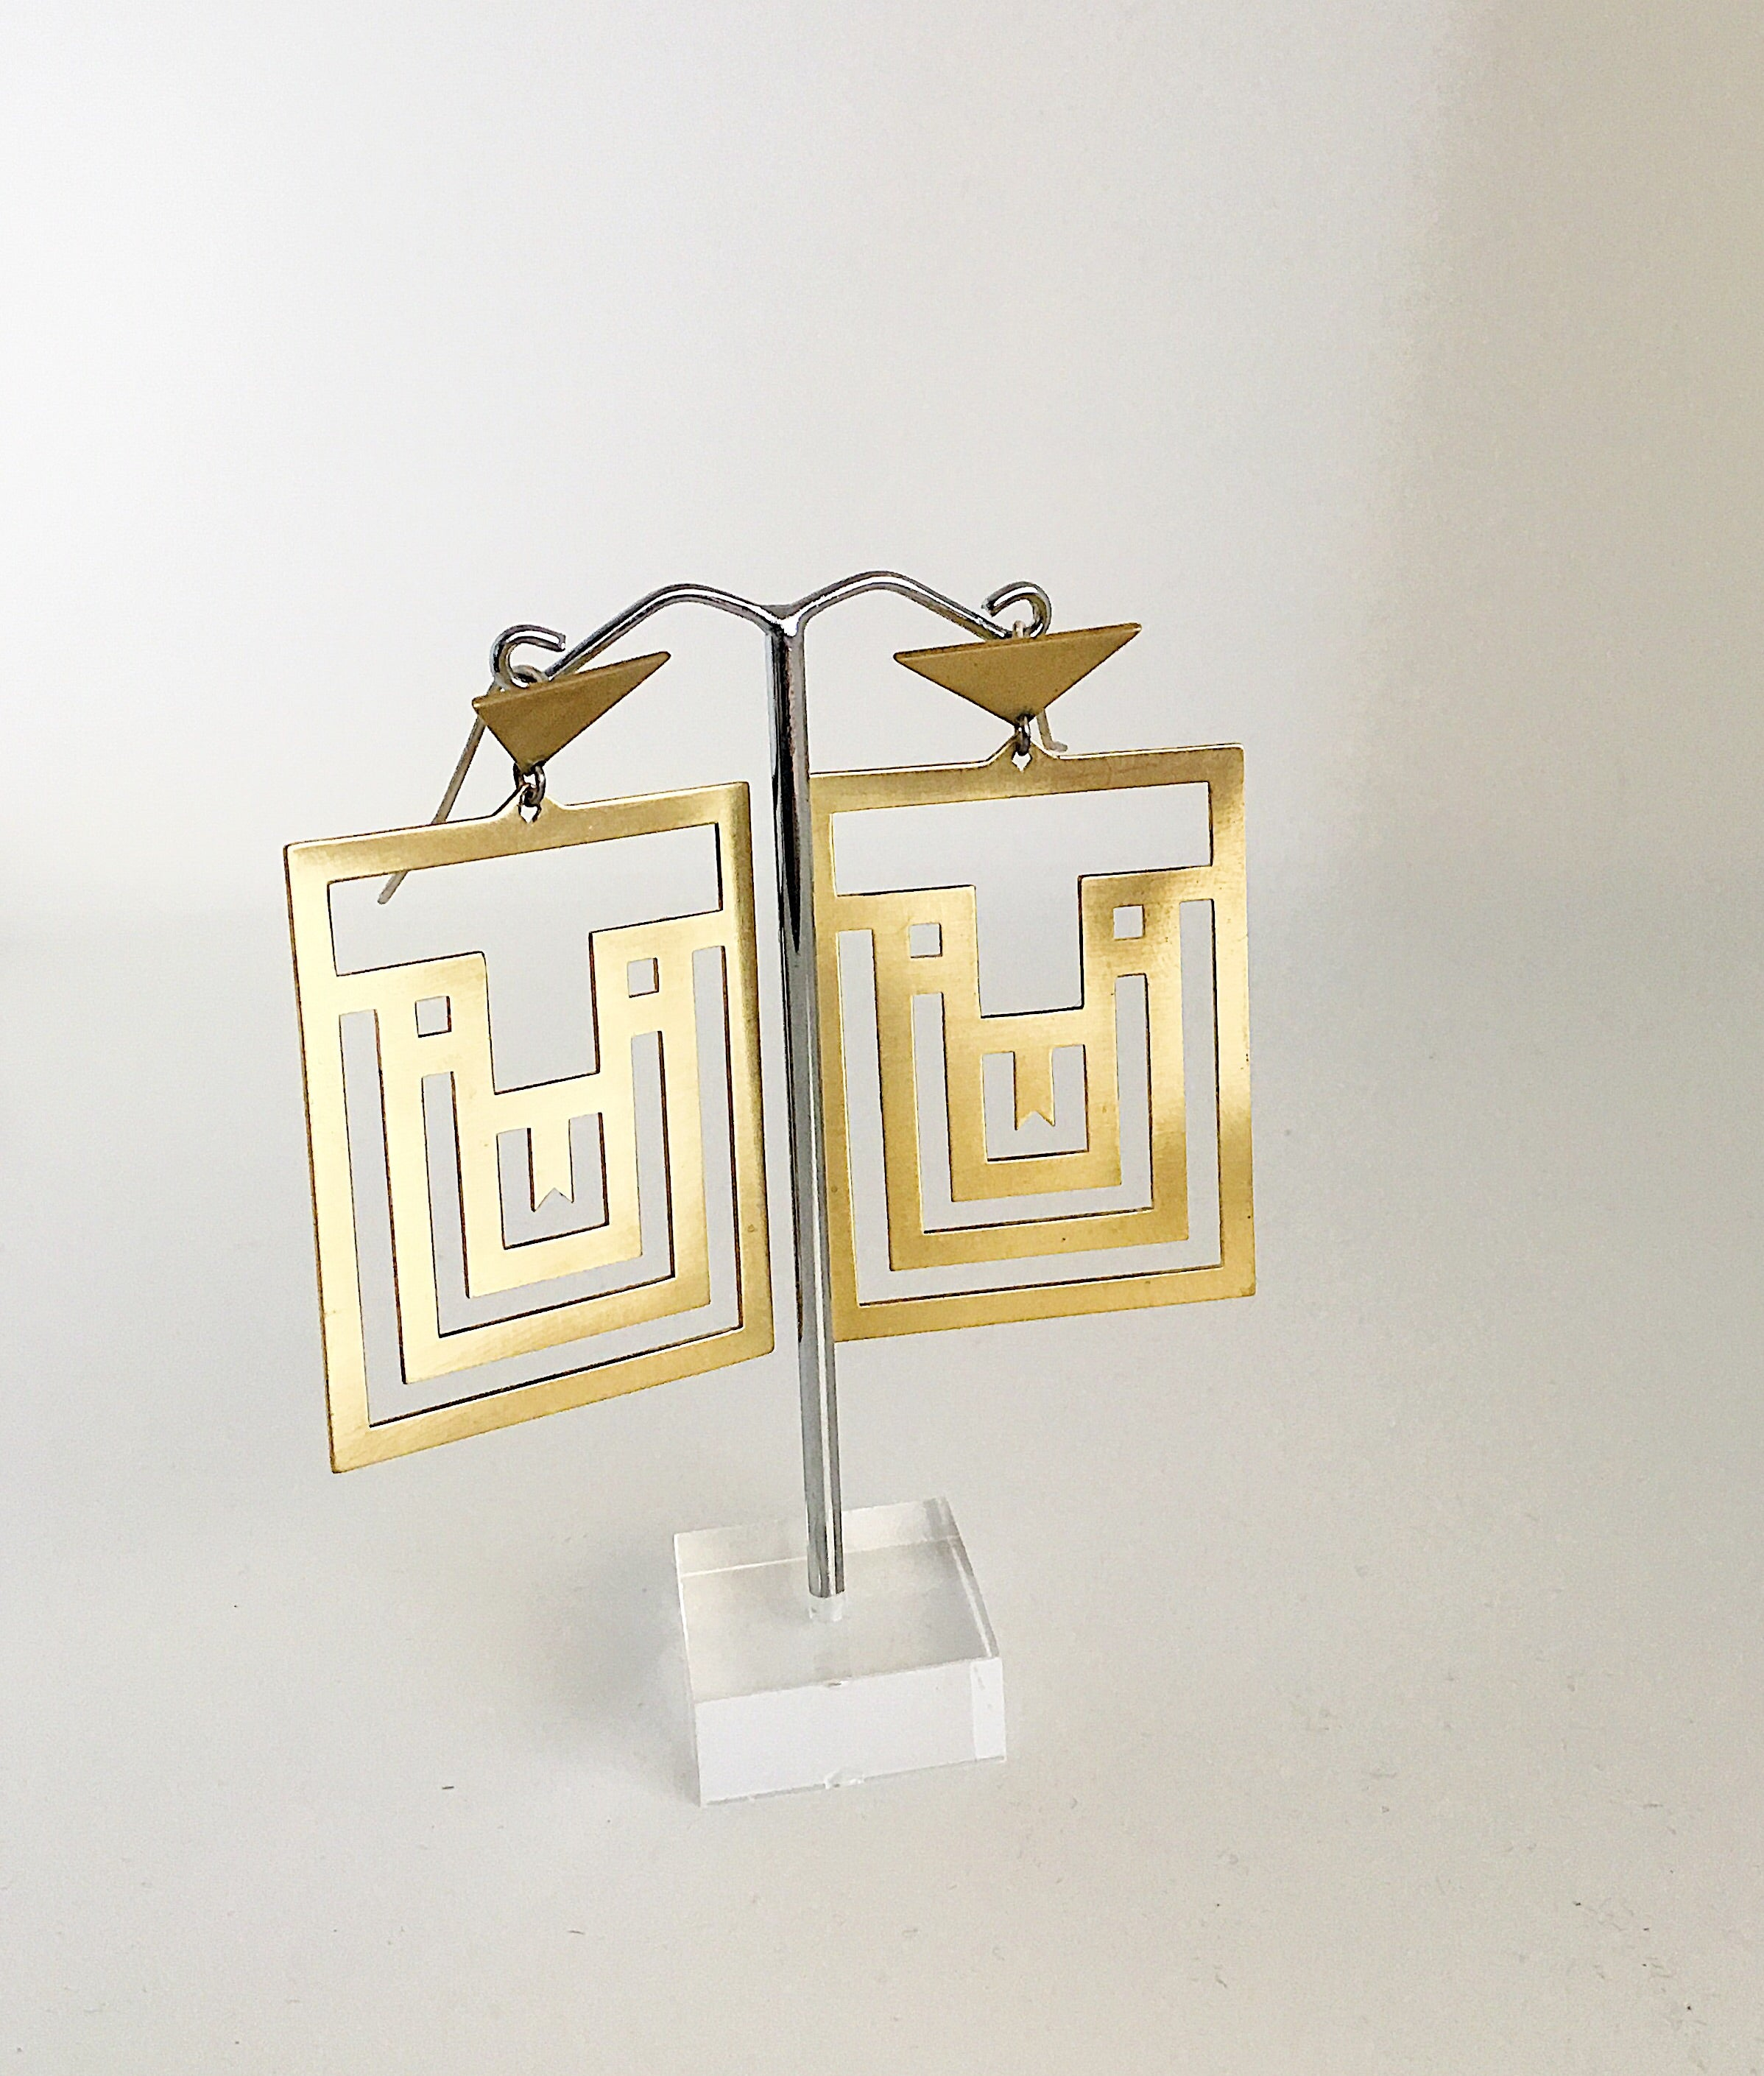 Amaze Maze Earrings by Banshee the Valkyrie